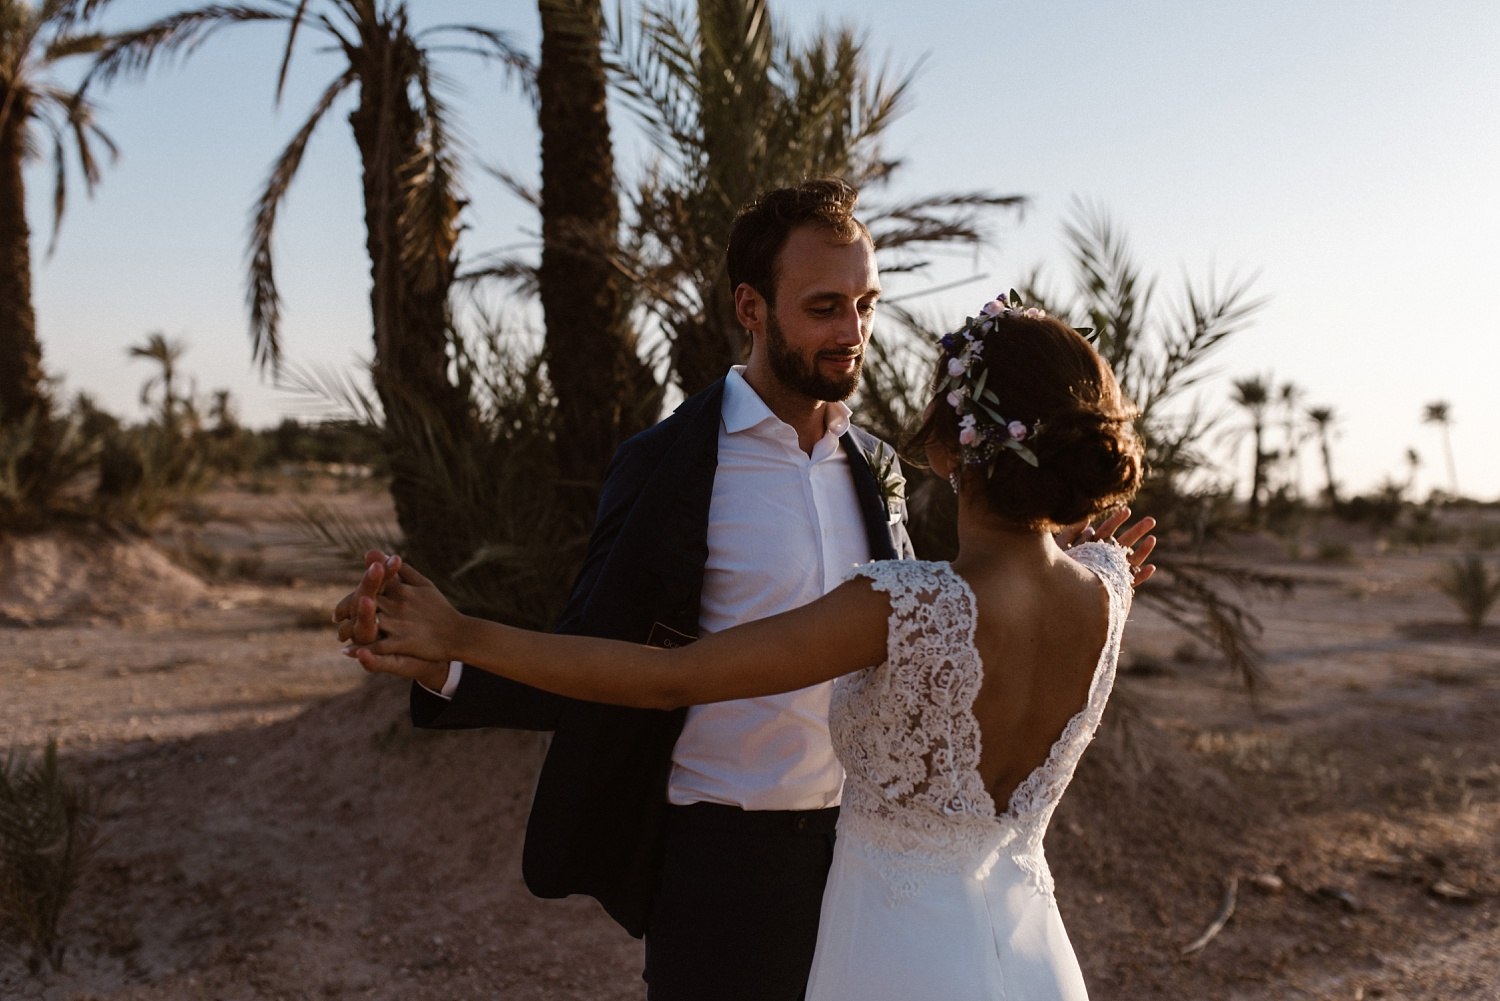 Marrakech destination wedding photograper - Alex and Dounia_0048.jpg